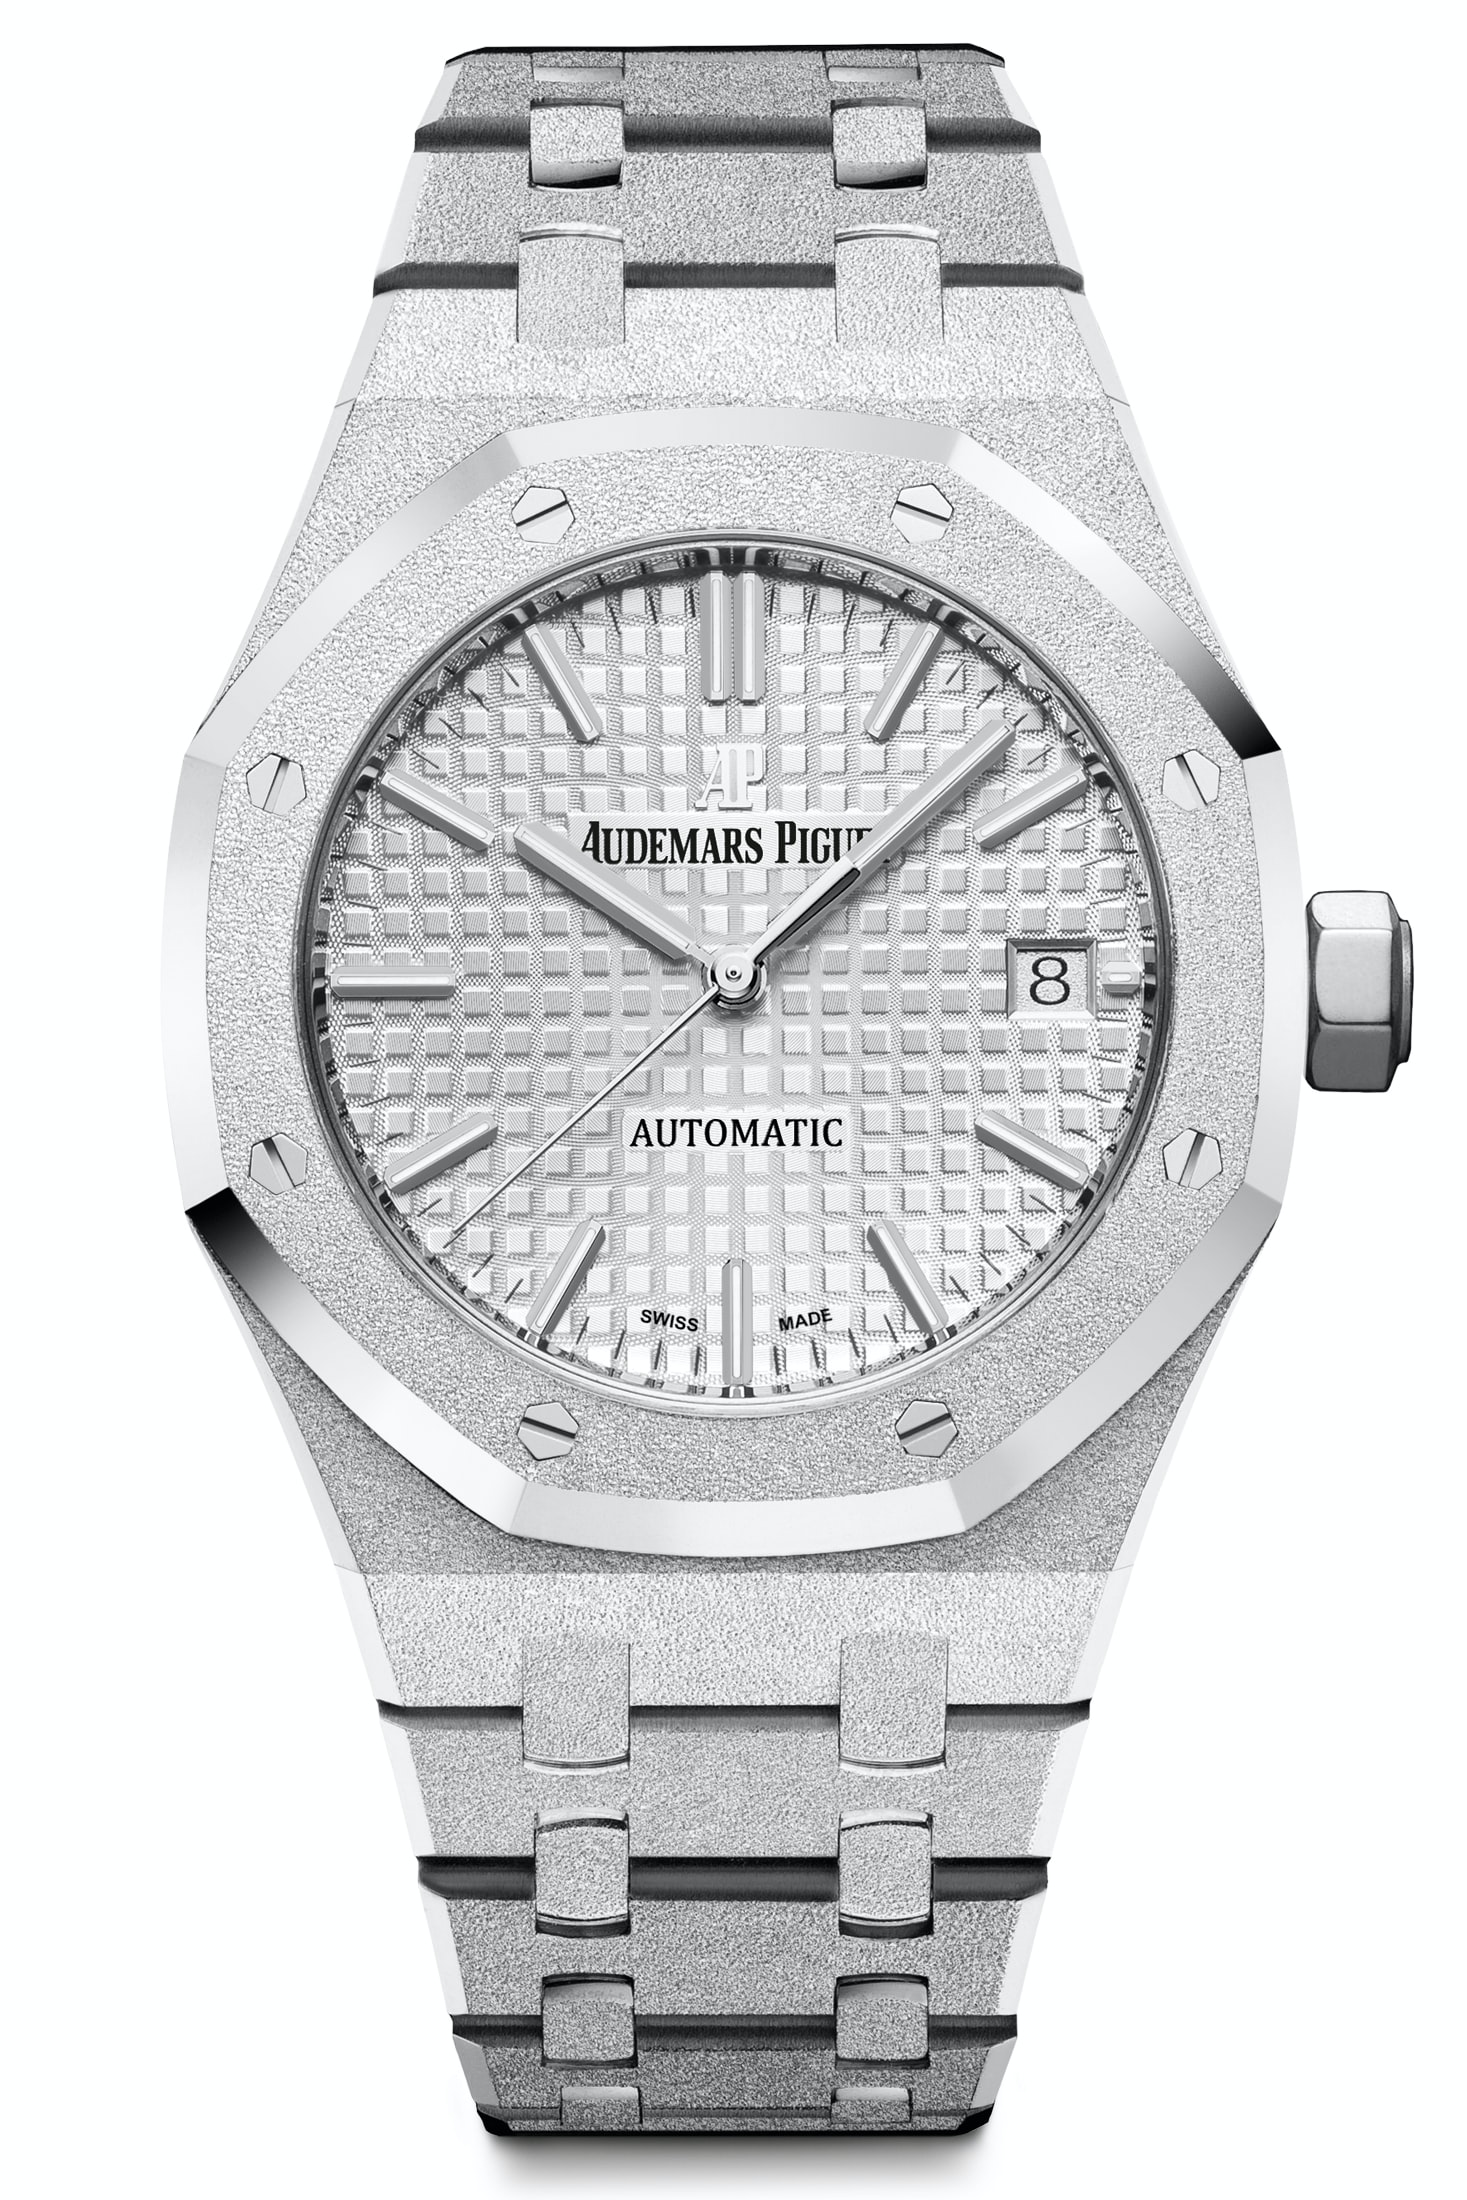 The white gold version of the watch is totally monochromatic and really shows off the textures. Introducing: The New 40th Anniversary Frosted Gold Ladies' Royal Oak From Audemars Piguet Introducing: The New 40th Anniversary Frosted Gold Ladies' Royal Oak From Audemars Piguet ap6